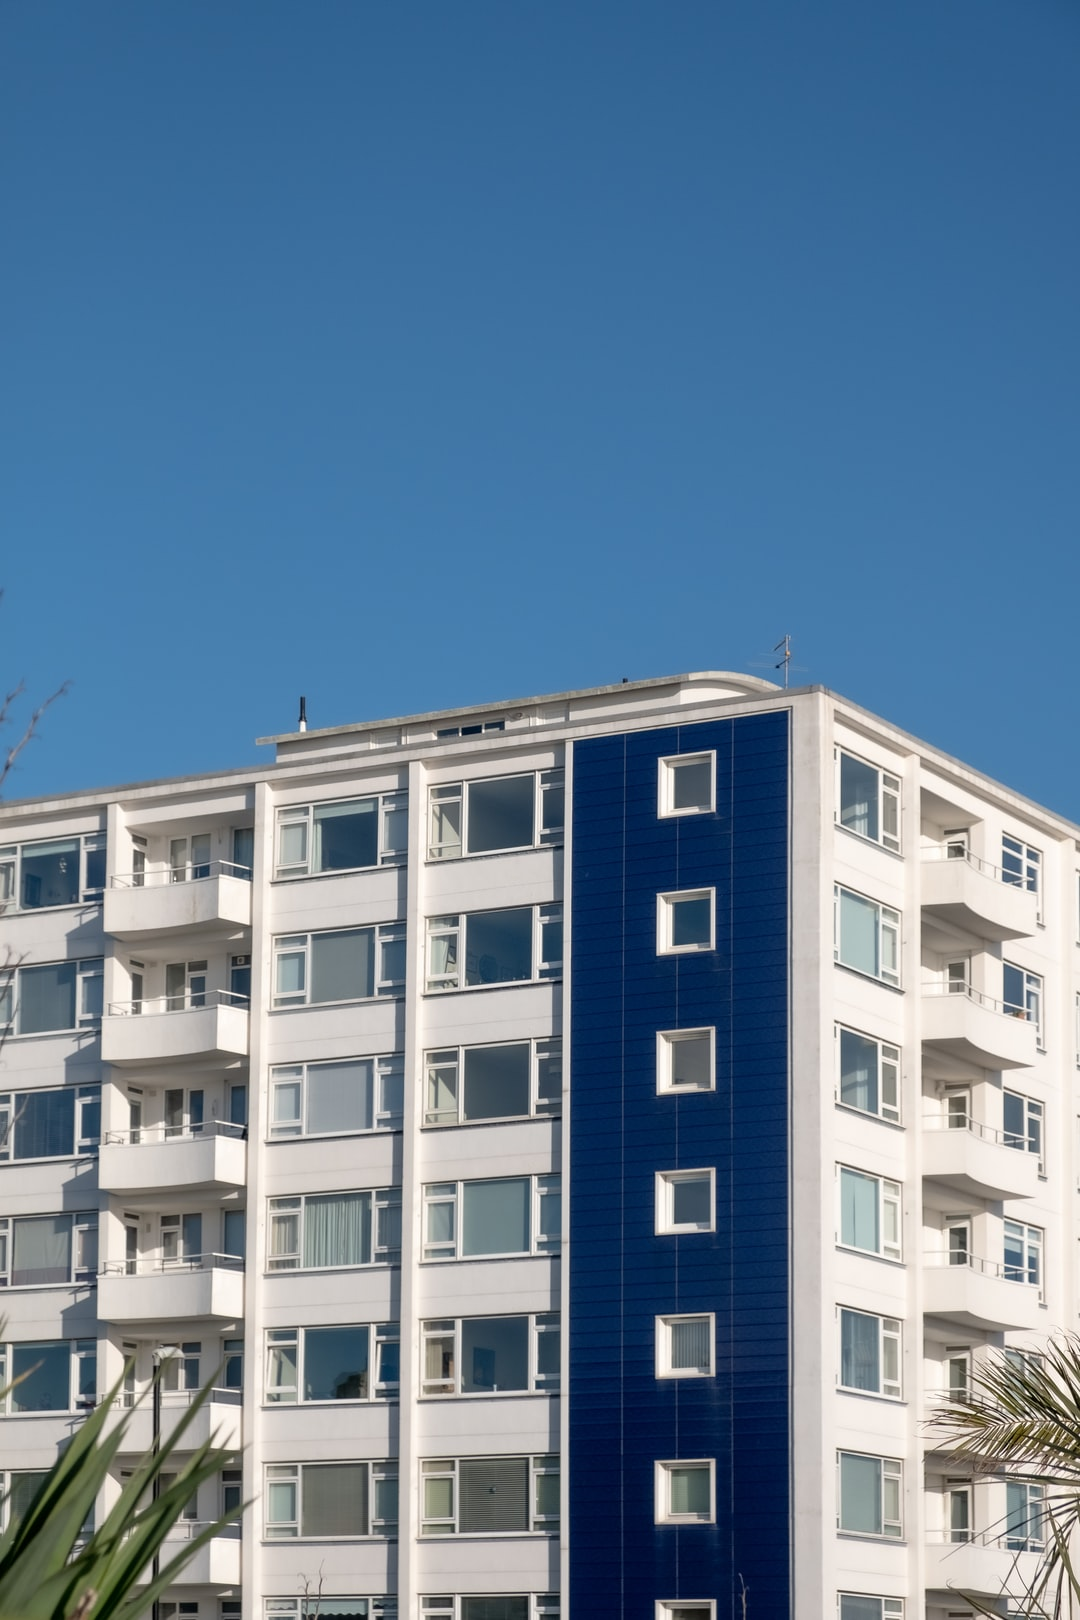 Block of flats against a blue sky in Eastbourne UK